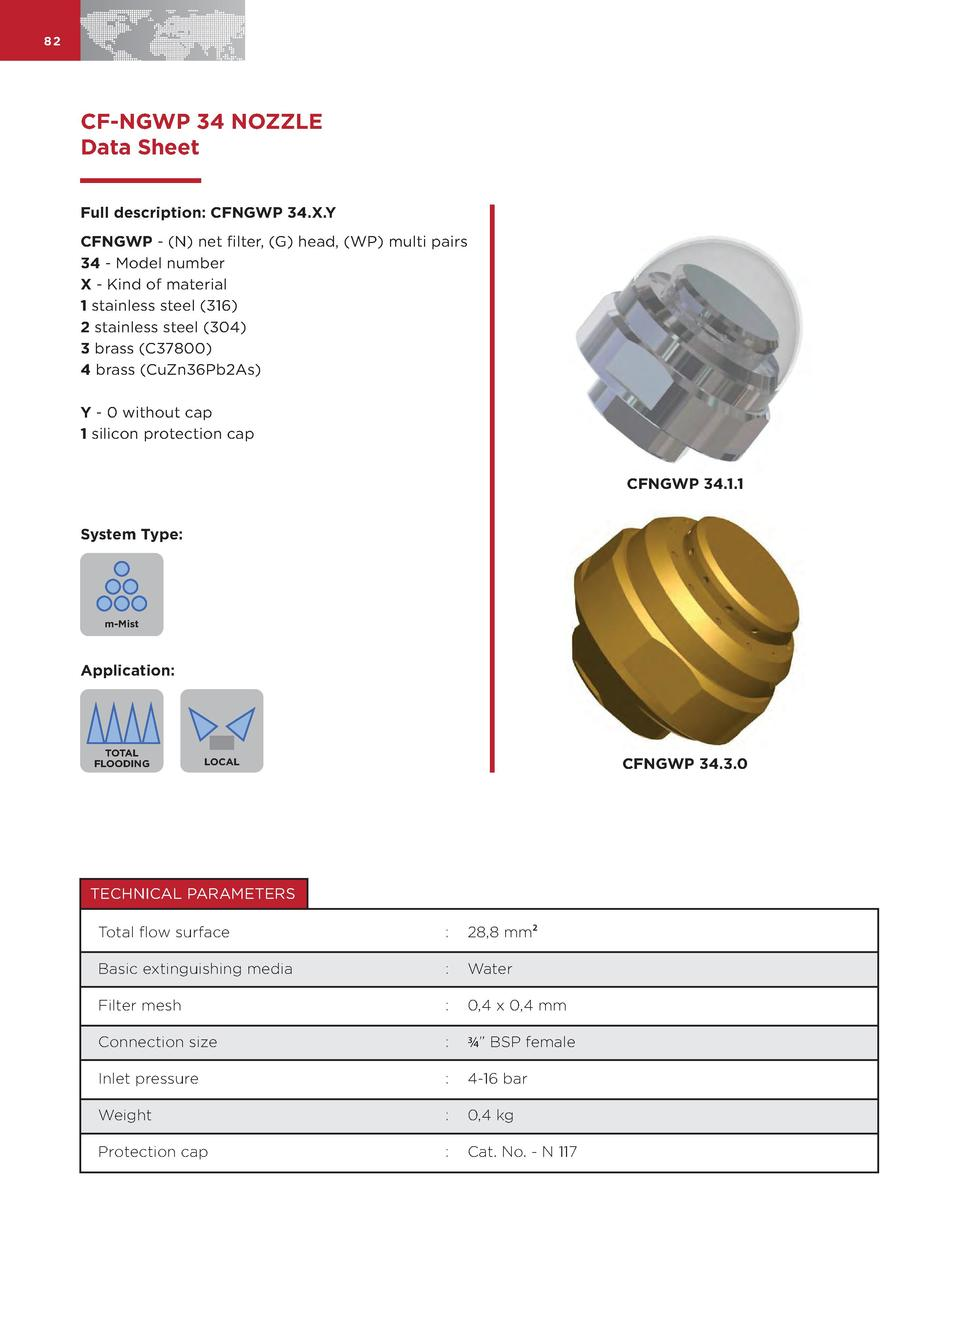 82  CF-NGWP 34 NOZZLE Data Sheet Full description  CFNGWP 34.X.Y CFNGWP -  N  net filter,  G  head,  WP  multi pairs 34 - ...